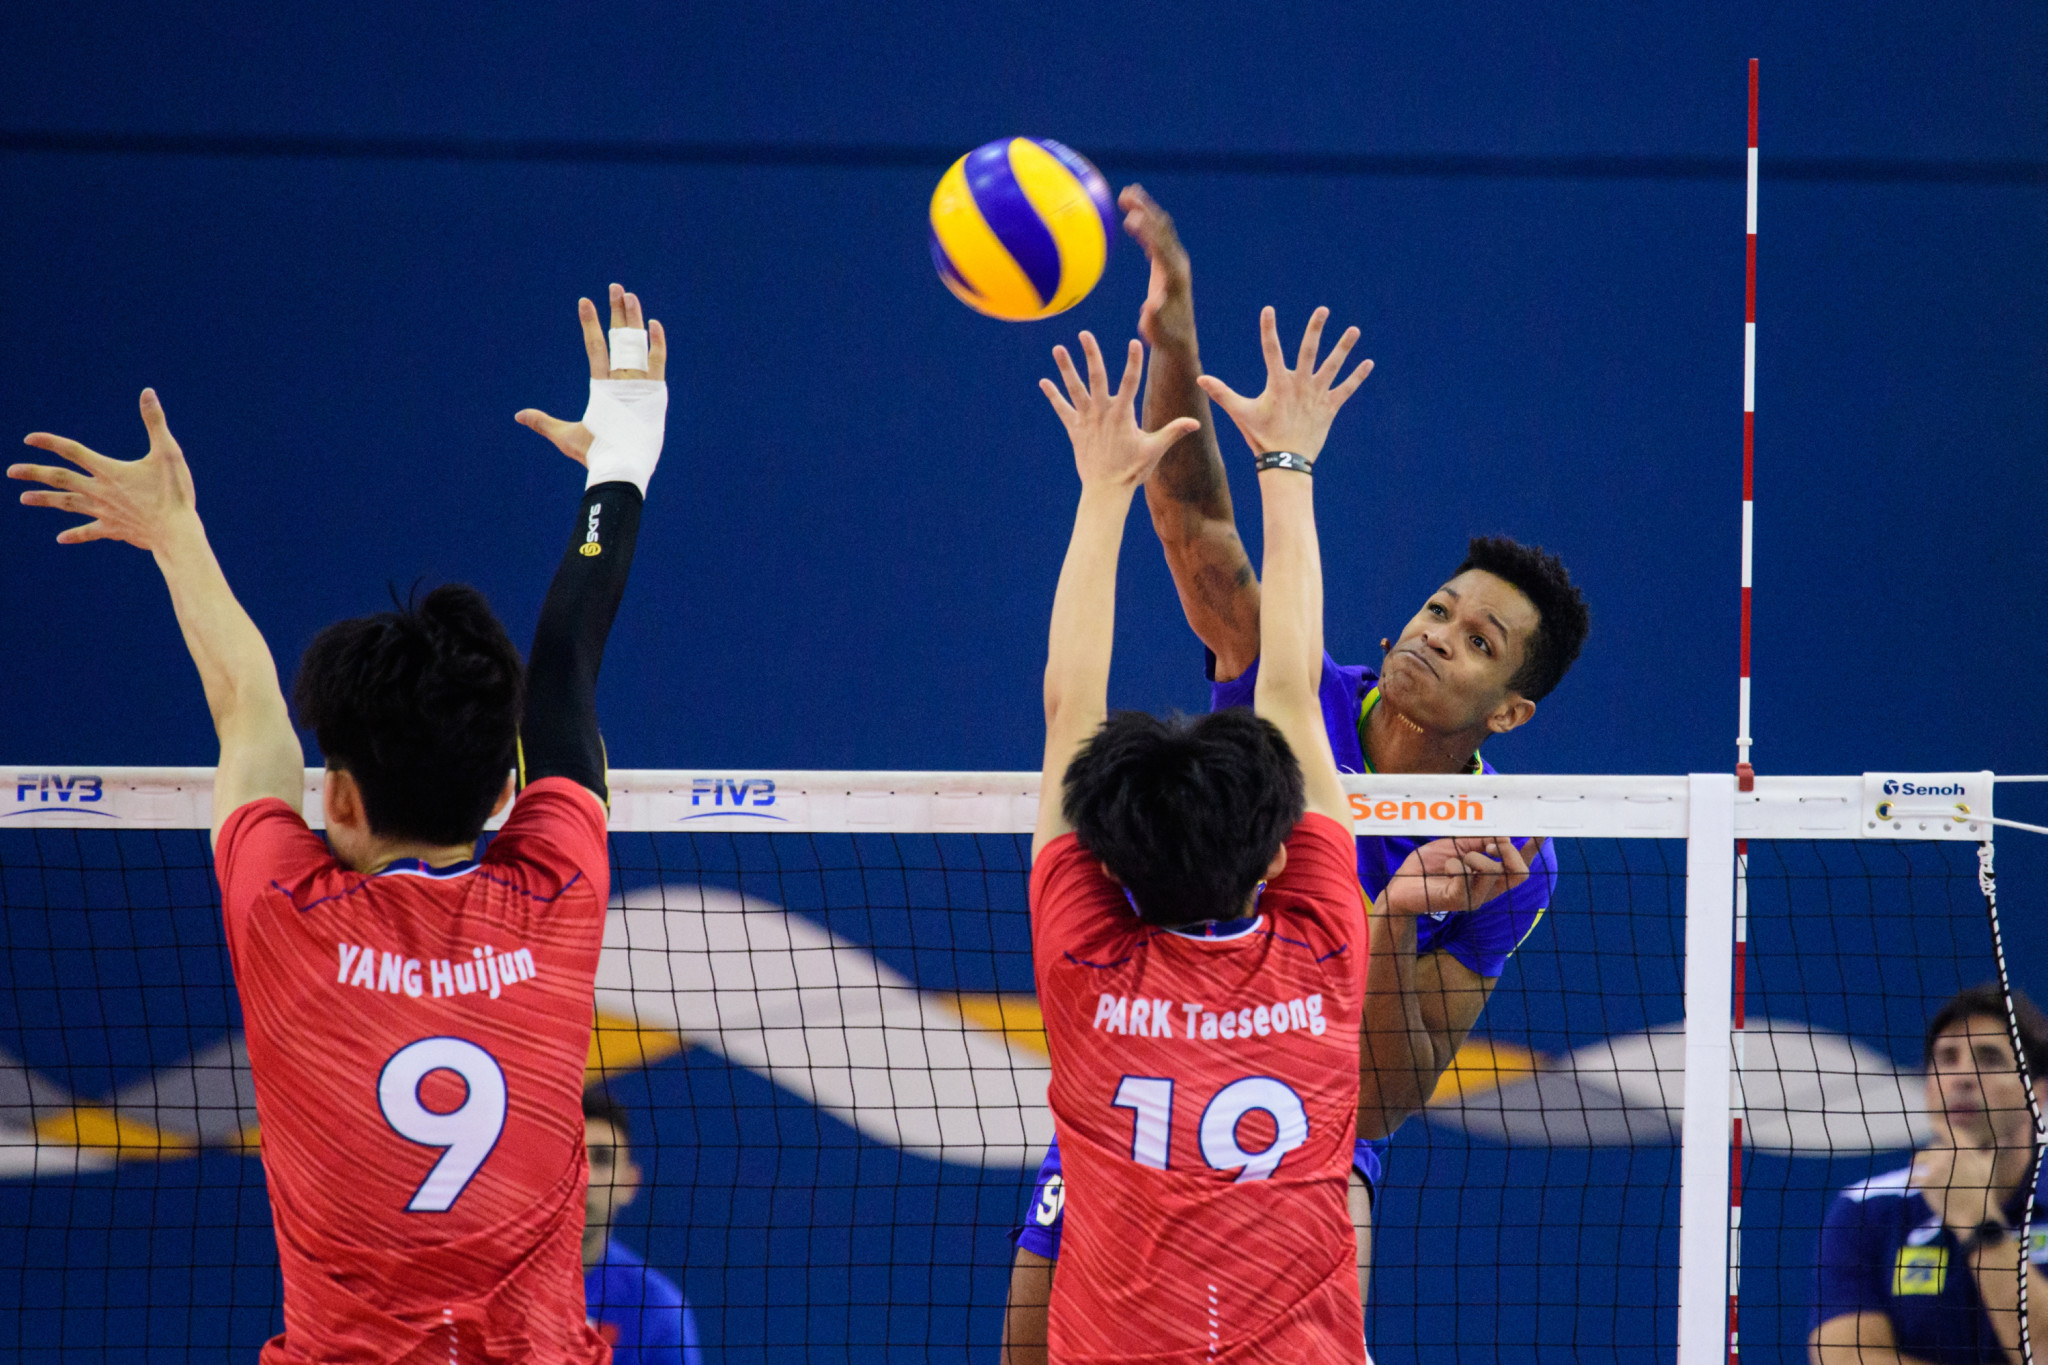 Brazil's Viktor was a loser against Iran in the semi-finals of the FIVB Men's Under-21 Championship in Bahrain, despite top-scoring for his side with 10 points ©FIVB